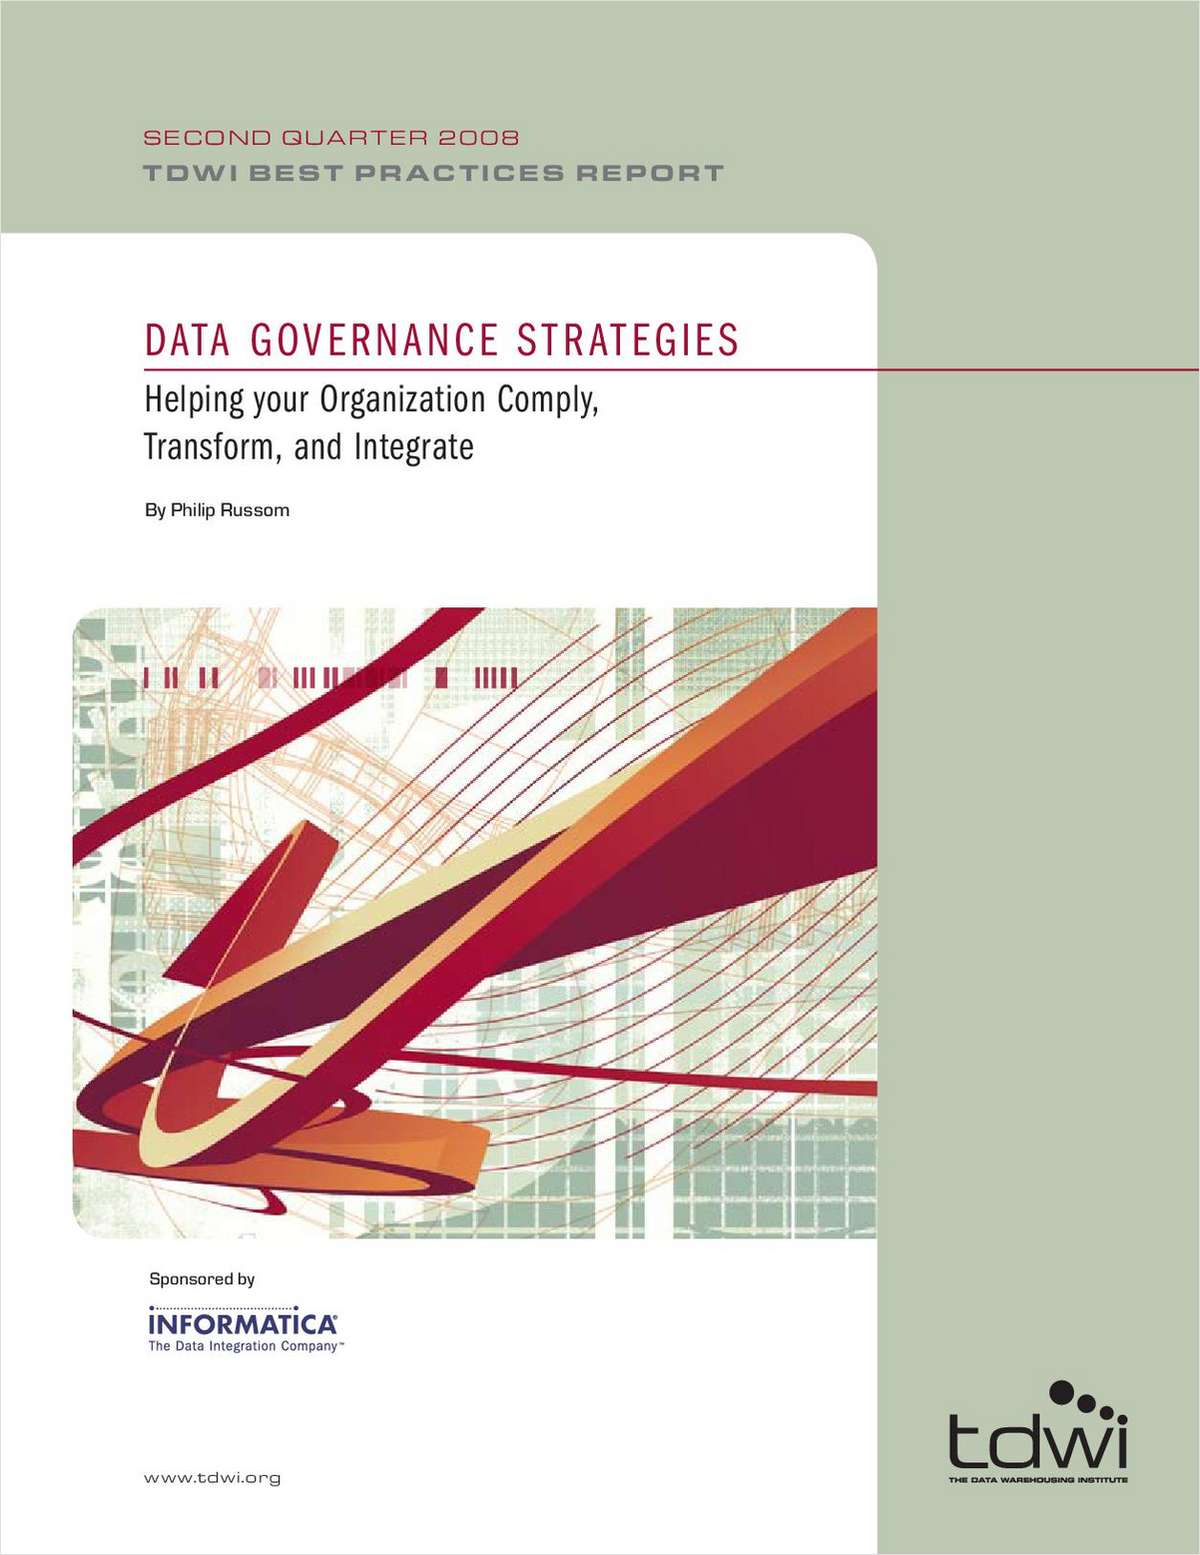 Data Governance Strategies Helping your Organization Comply, Transform, and Integrate